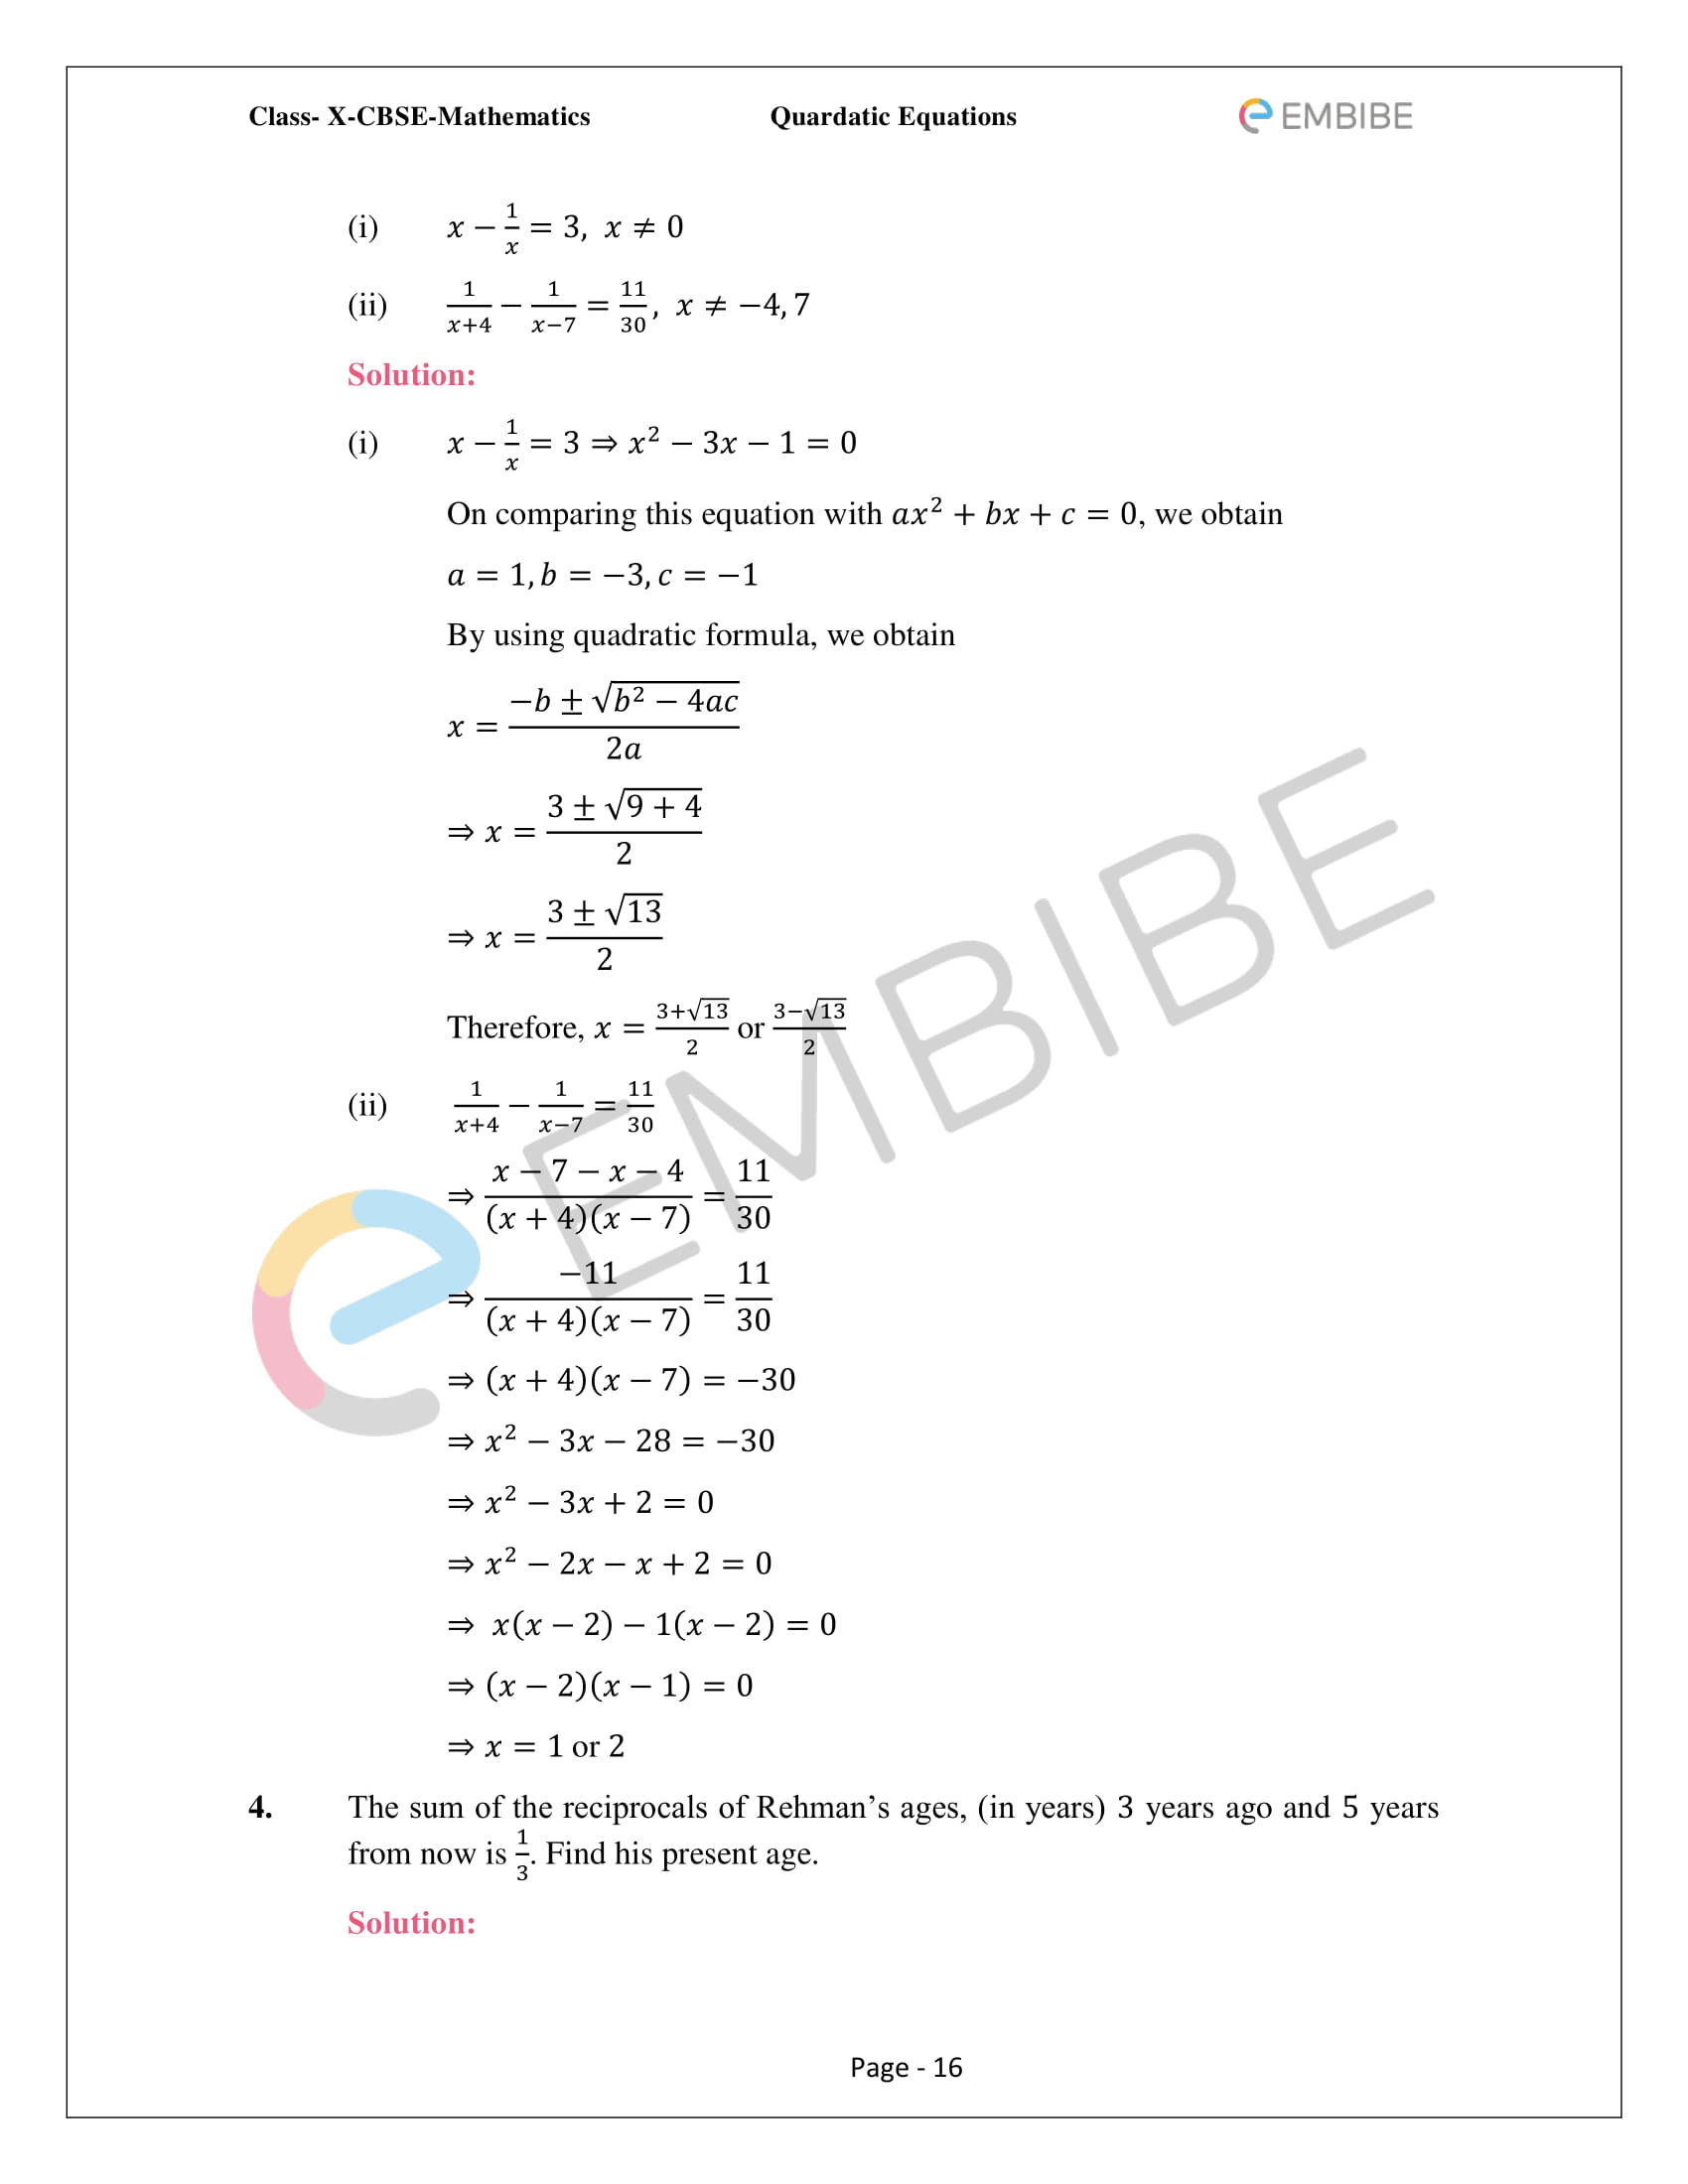 CBSE NCERT Solutions For Class 10 Maths Chapter 4 – Quadratic Equations - 16